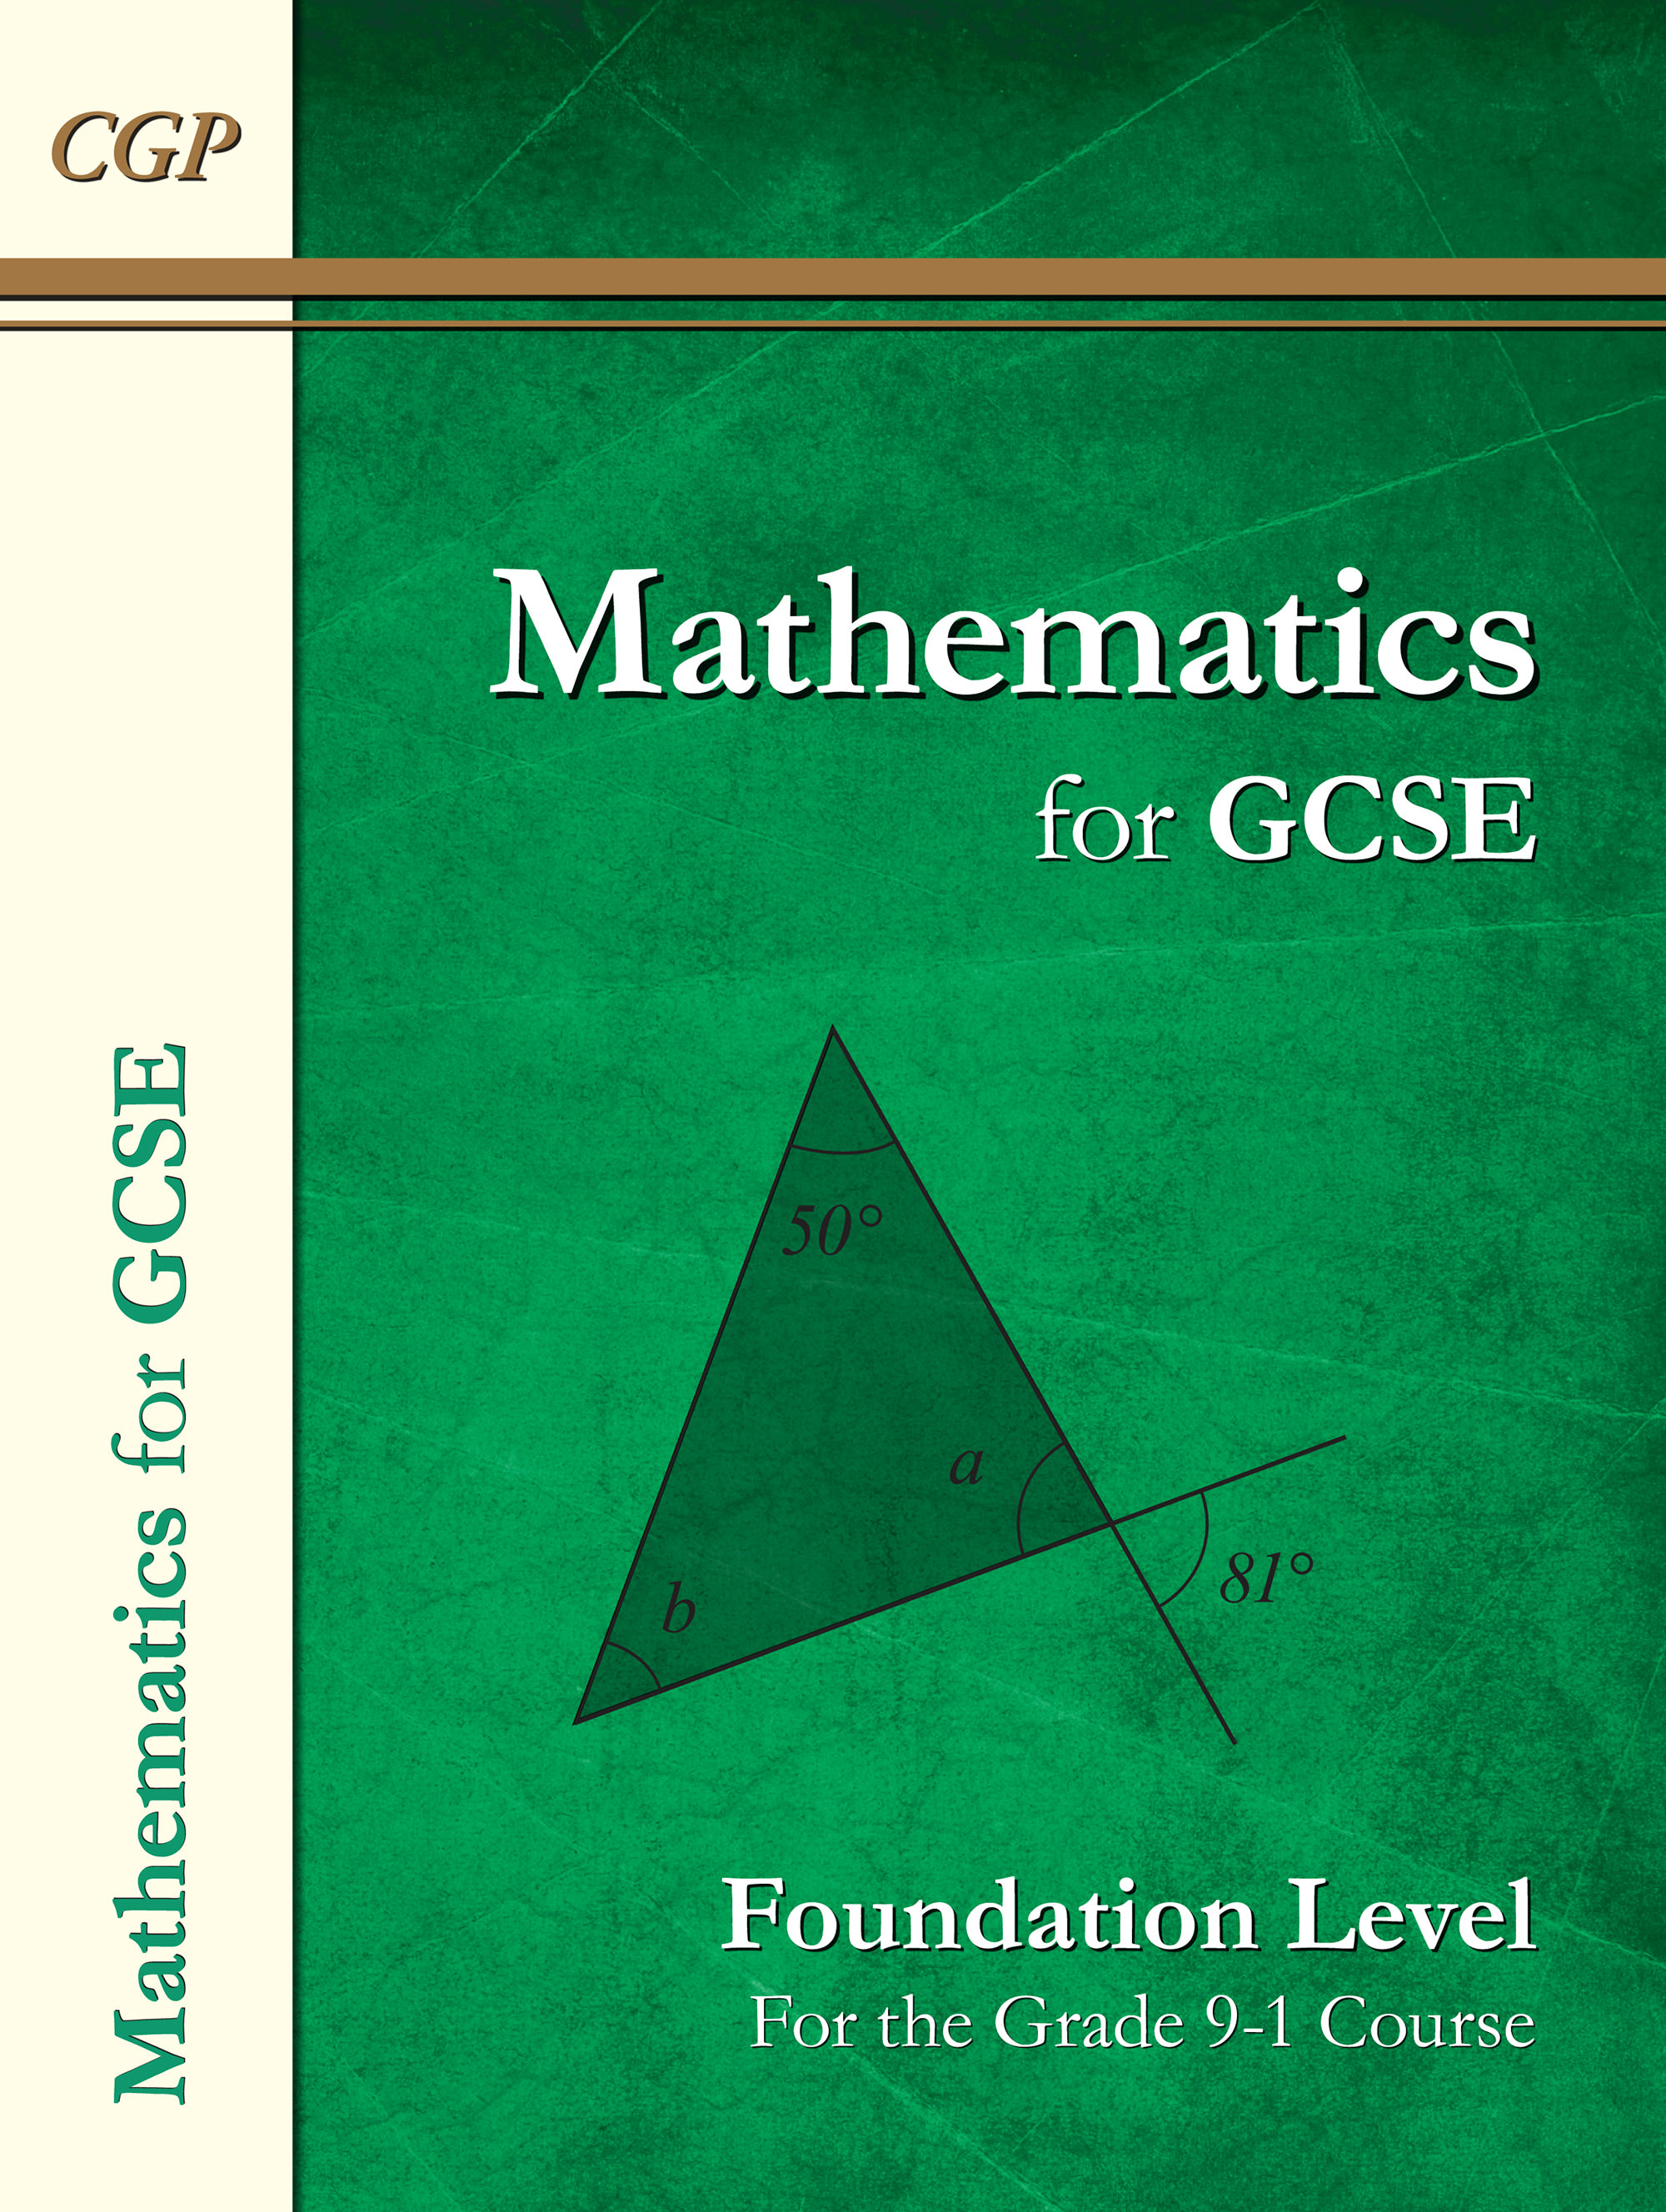 MFN42 - Maths for GCSE Textbook: Foundation (for the Grade 9-1 Course)